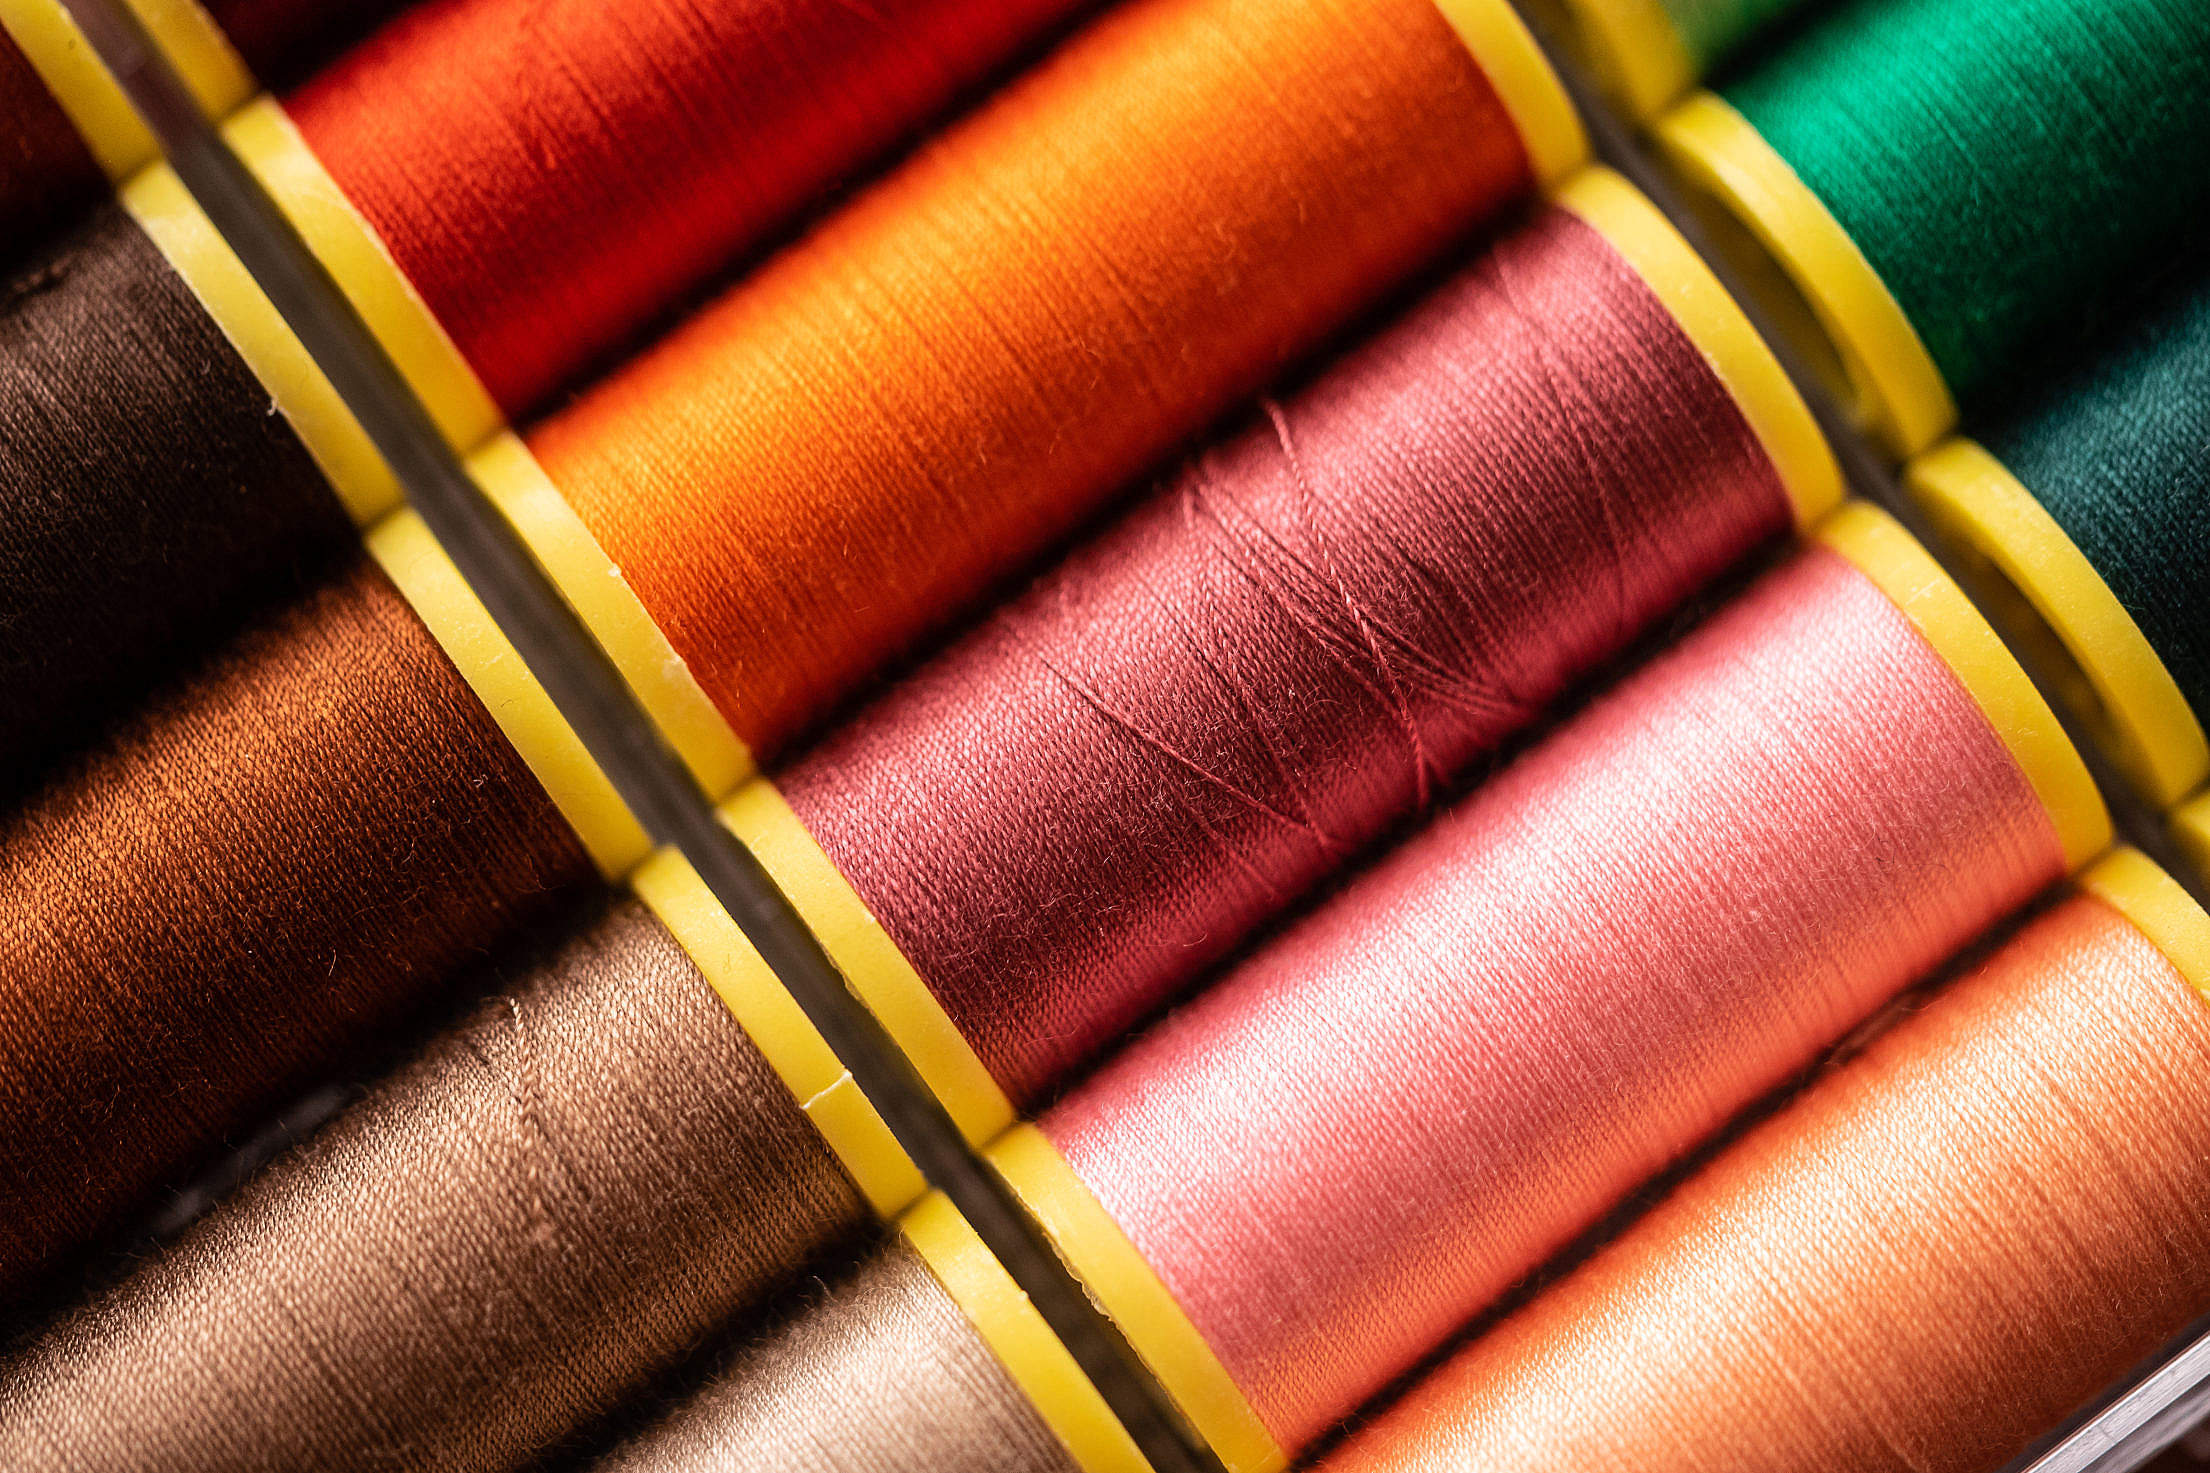 Sewing Threads Free Stock Photo